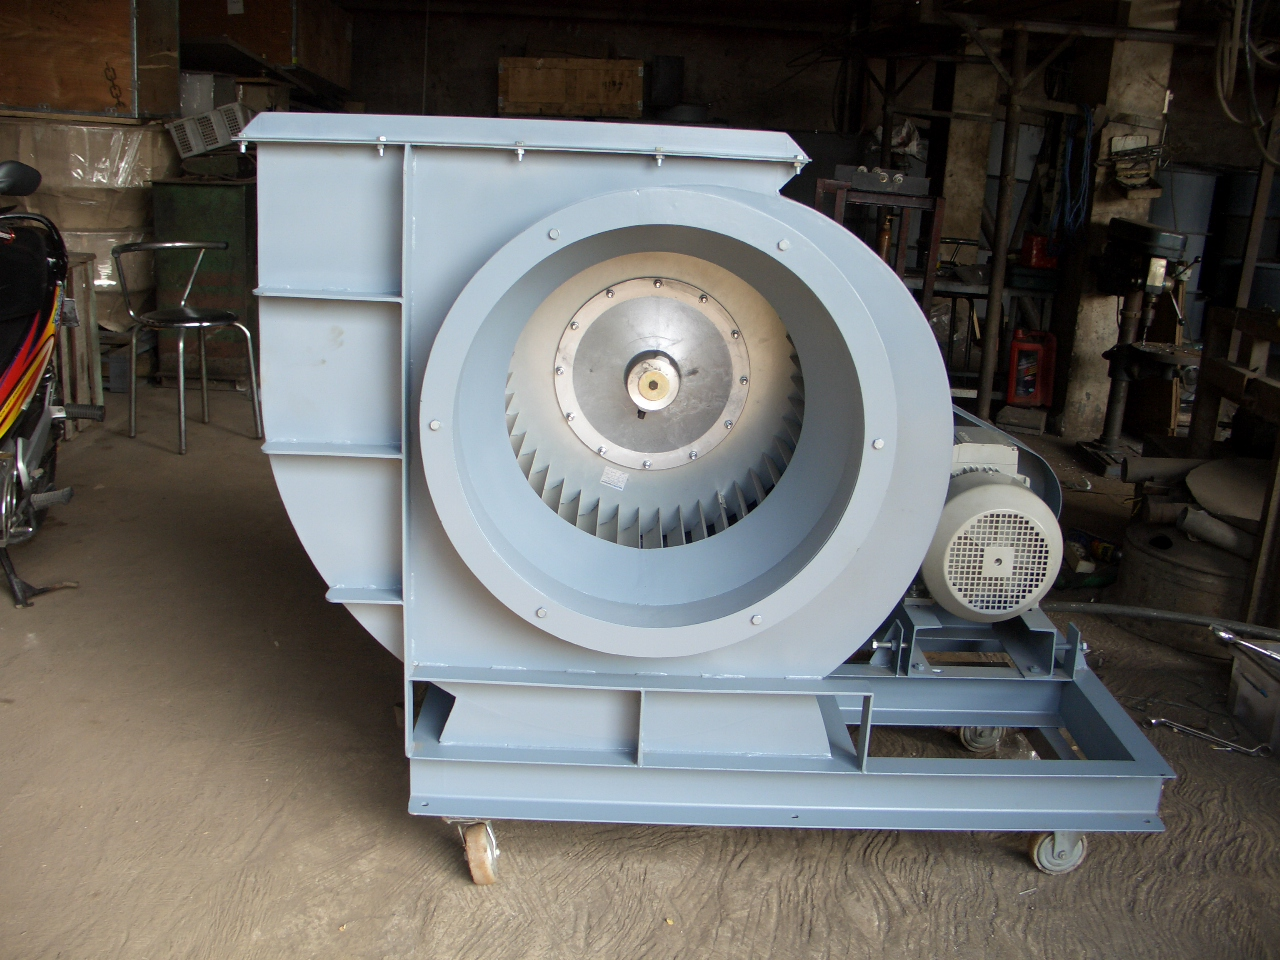 centrifugal fan failure essay Centrifugal pumps are often classified by a type number known as the specific speed that varies with the shape of the impeller two main components of a centrifugal pump are the impeller and the casing.